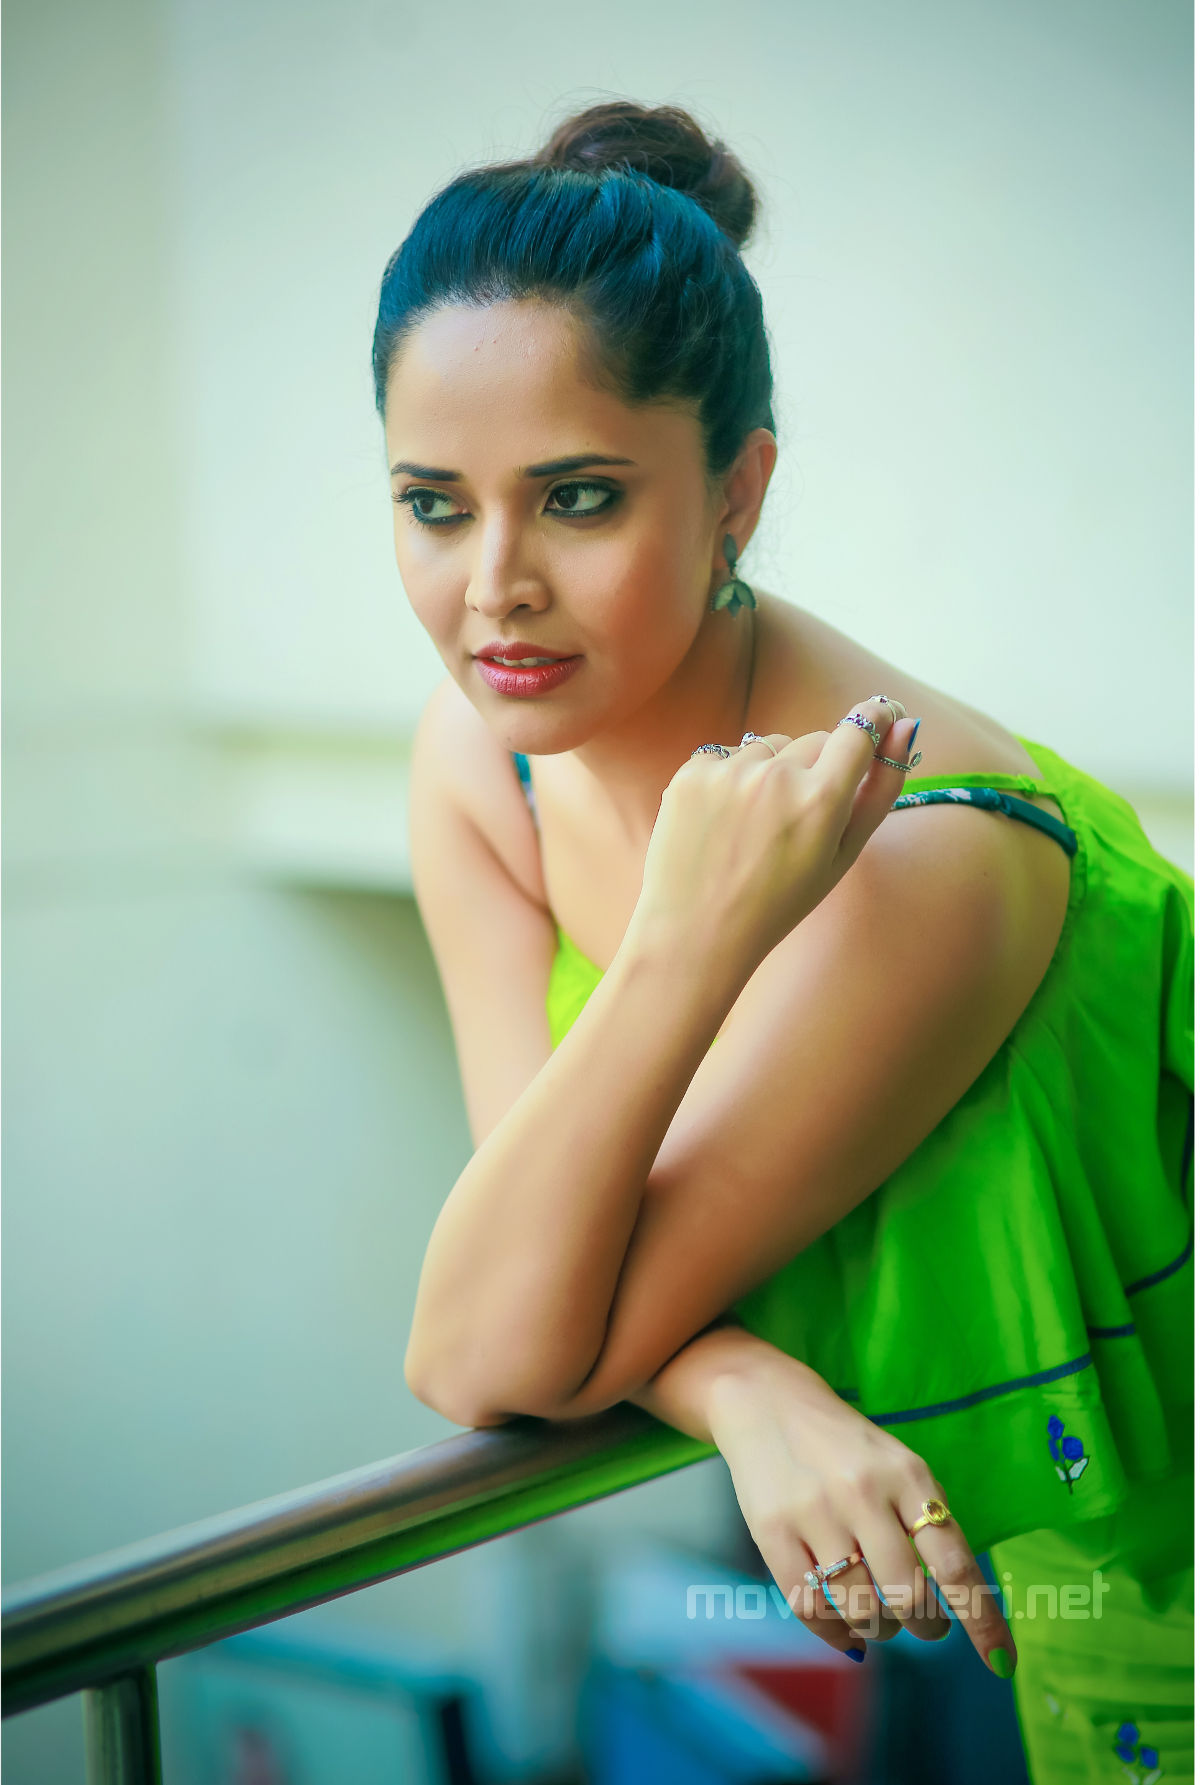 Popular actress Anasuya joins the ensemble cast of Sachindi Ra Gorre